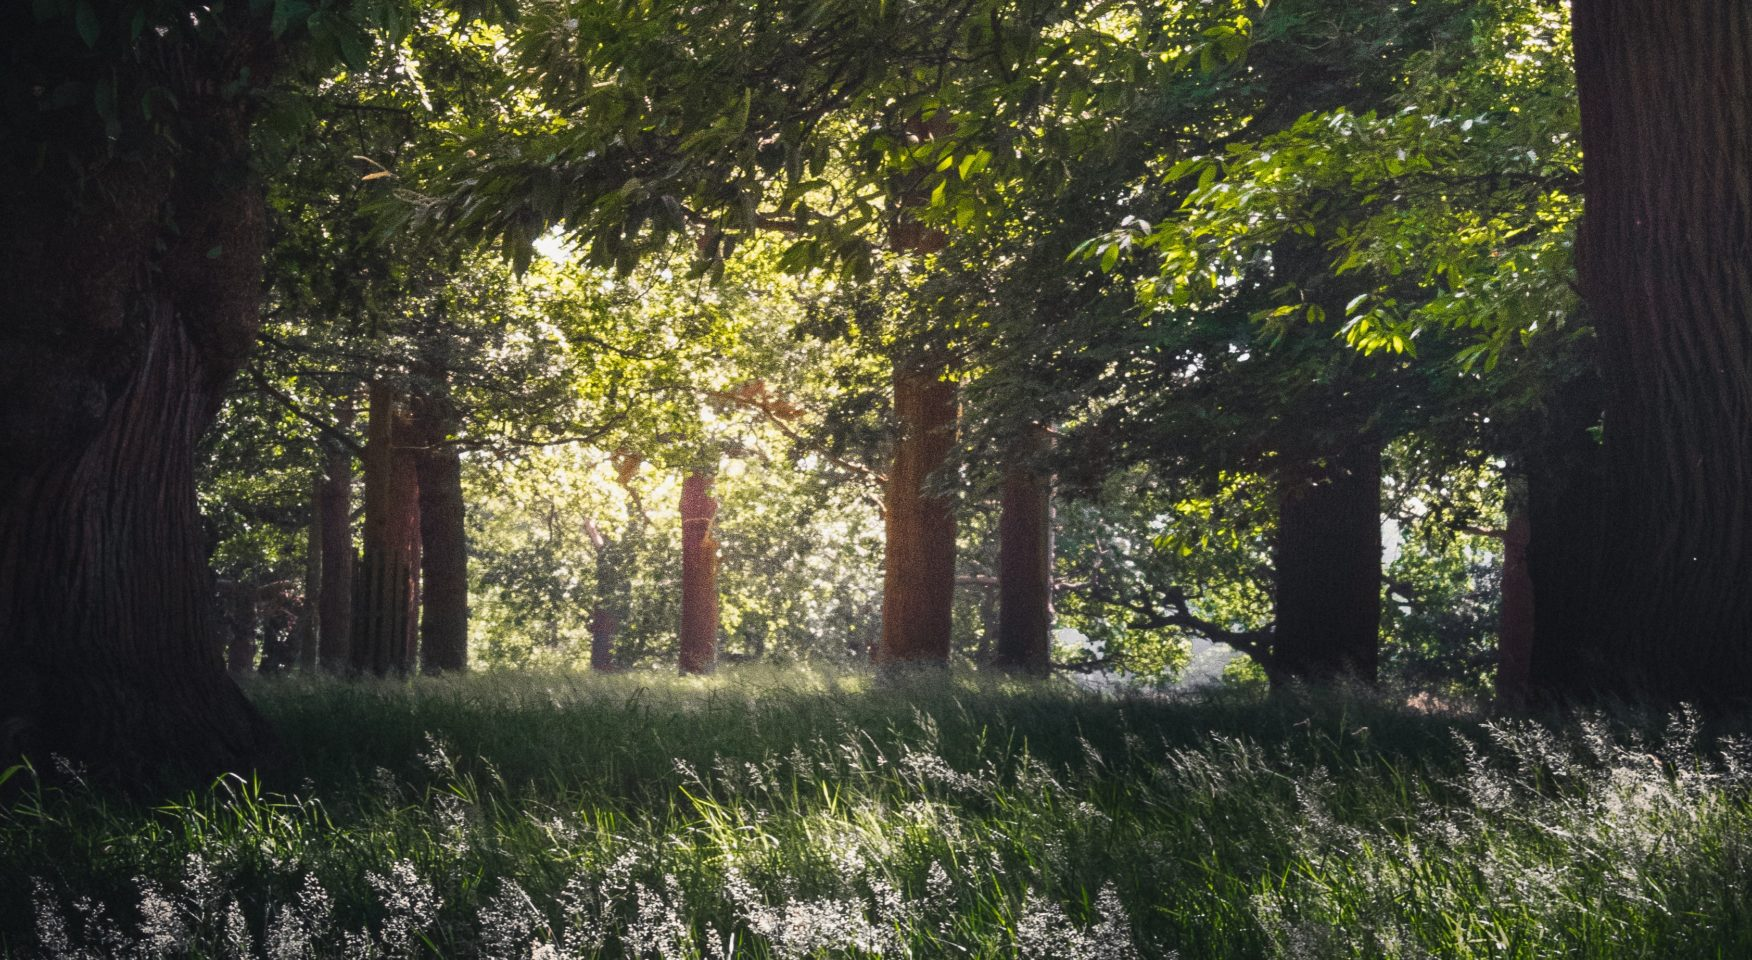 Forest and wild grass in summer light